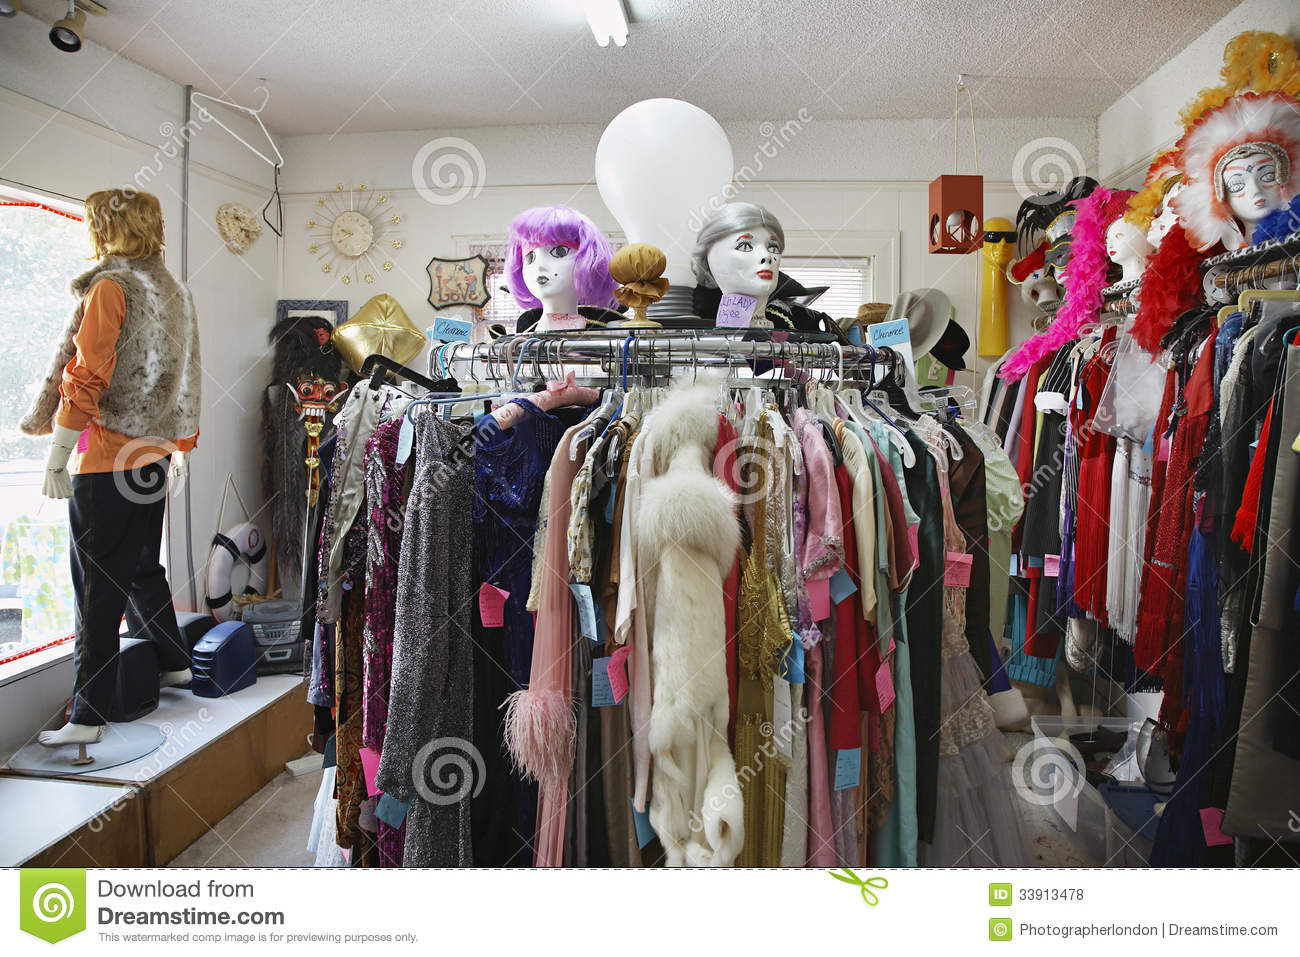 Buying second-hand clothing and furniture has long been regarded a smart approach to shopping. Prices at thrift stores are often largely discounted